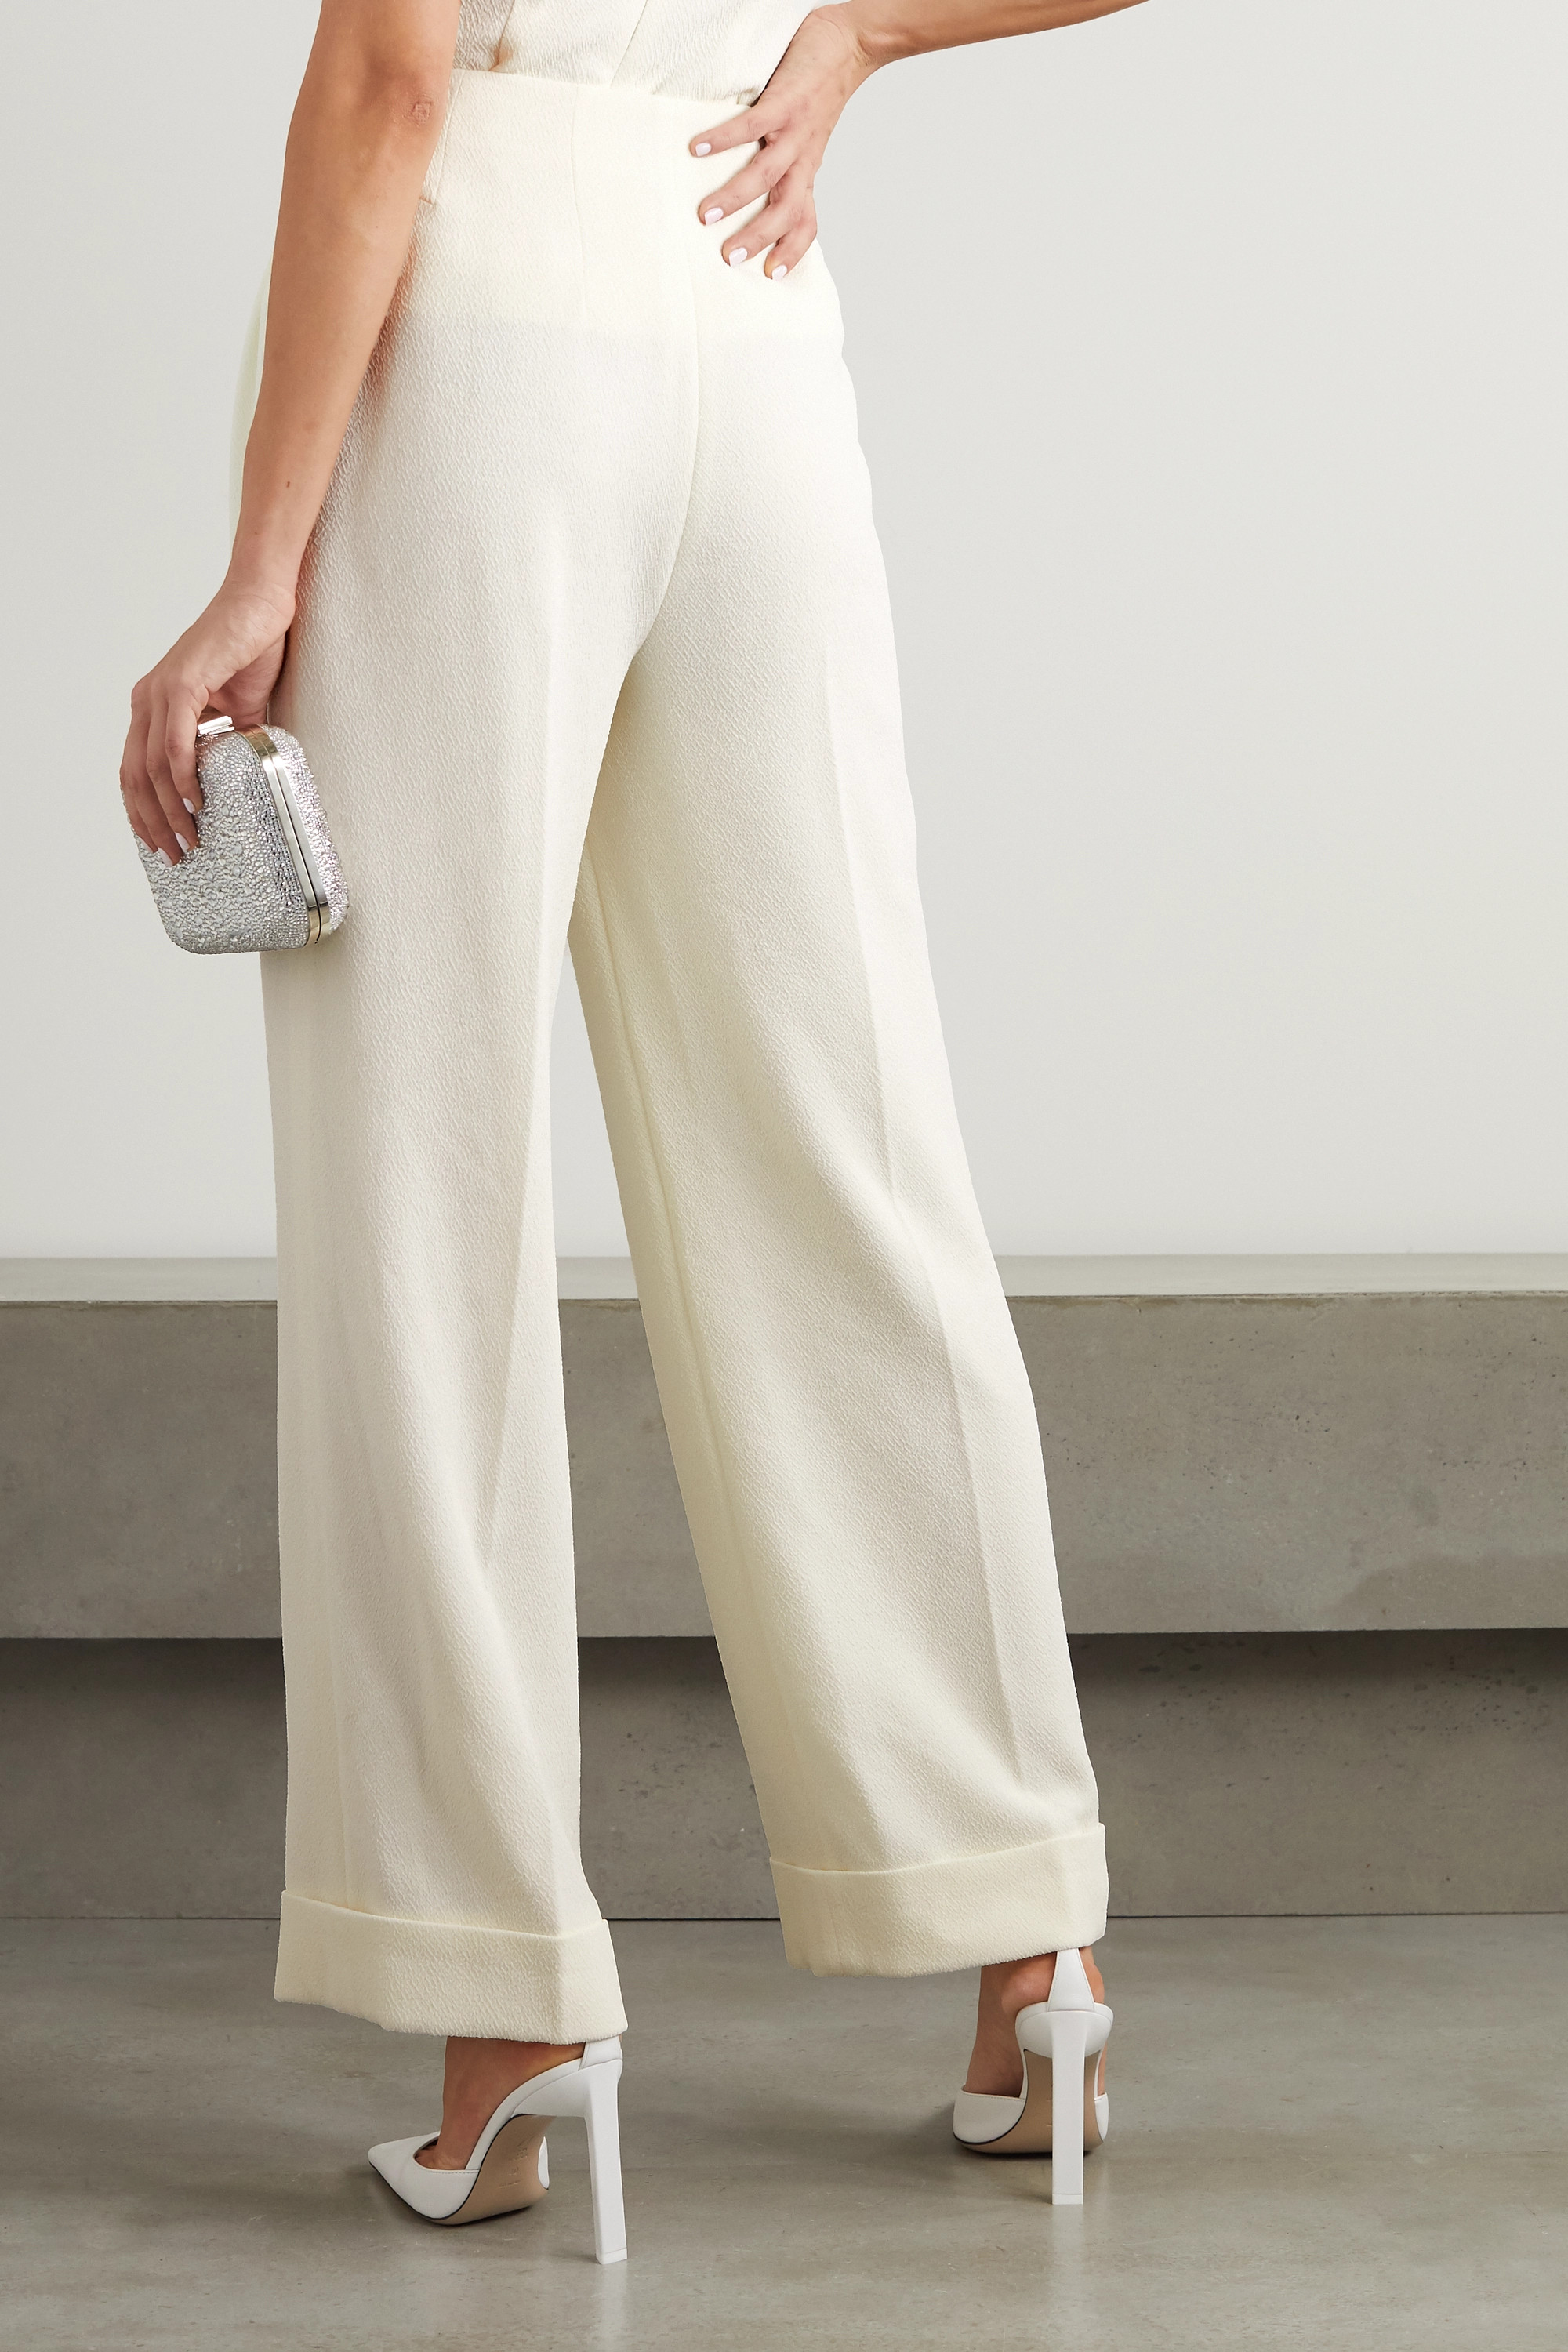 Emilia Wickstead Collen crepe wide-leg pants